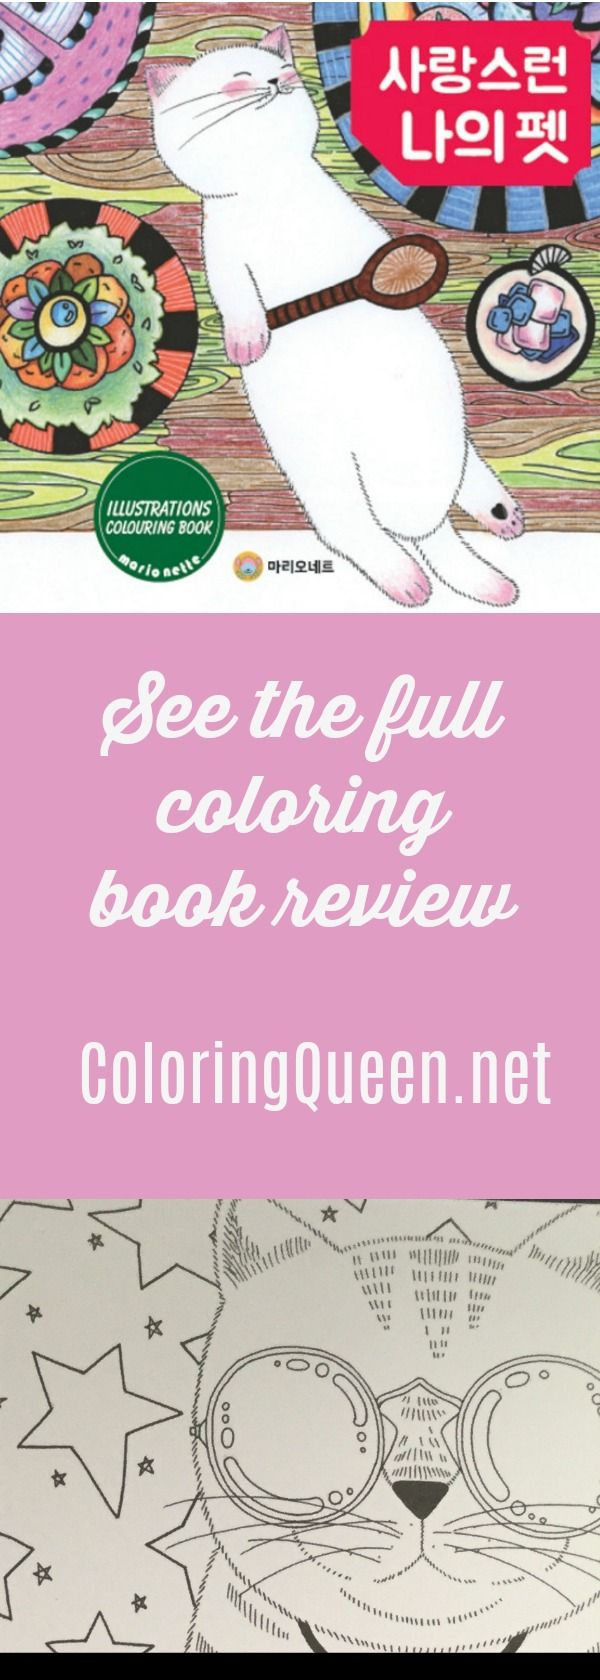 The coloring book analysis - My Lovely Pet Coloring Book Review